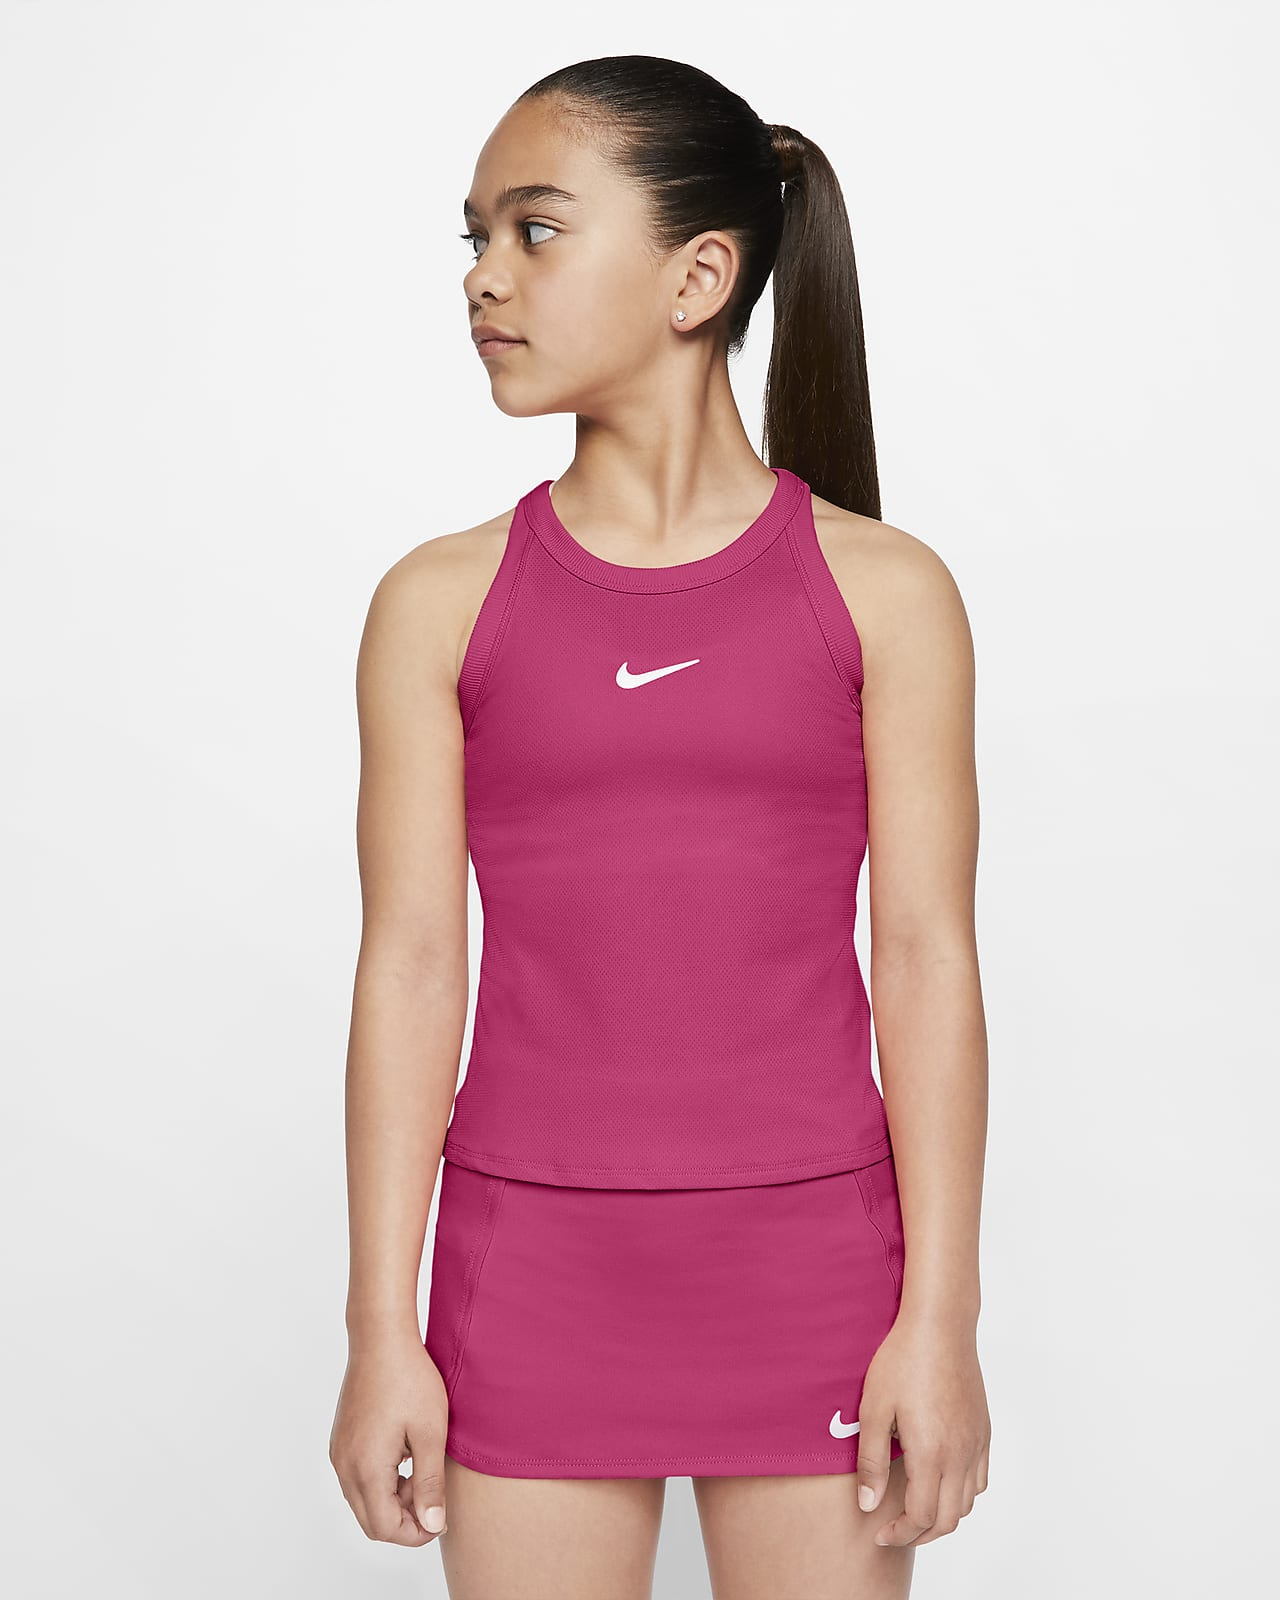 Canotta da tennis NikeCourt Dri-FIT - Ragazza